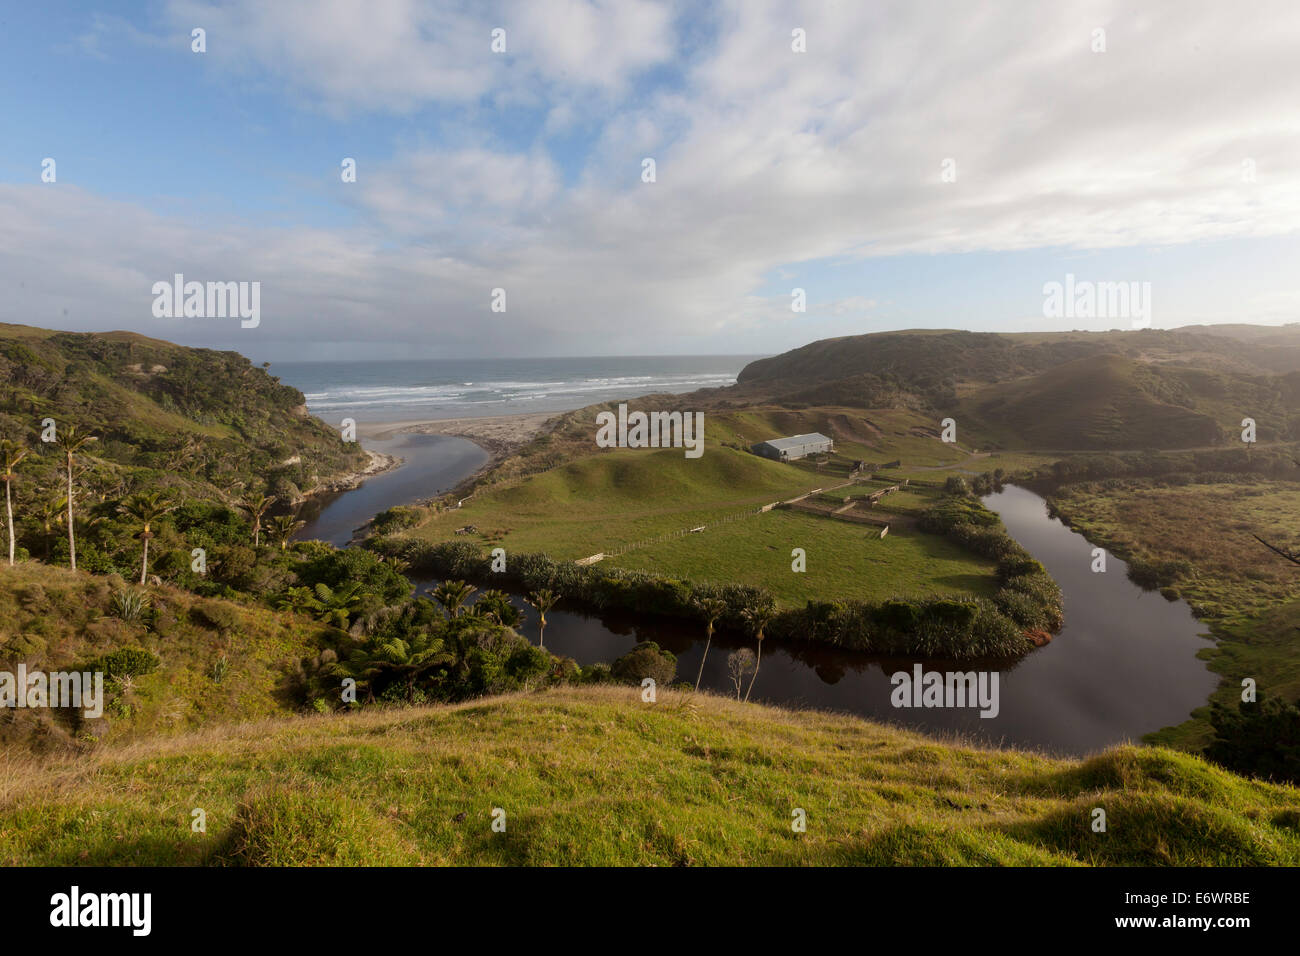 Farmland on the Anatori River estuary, pastures surrounded by arm of the river and coastline, west coast of South - Stock Image